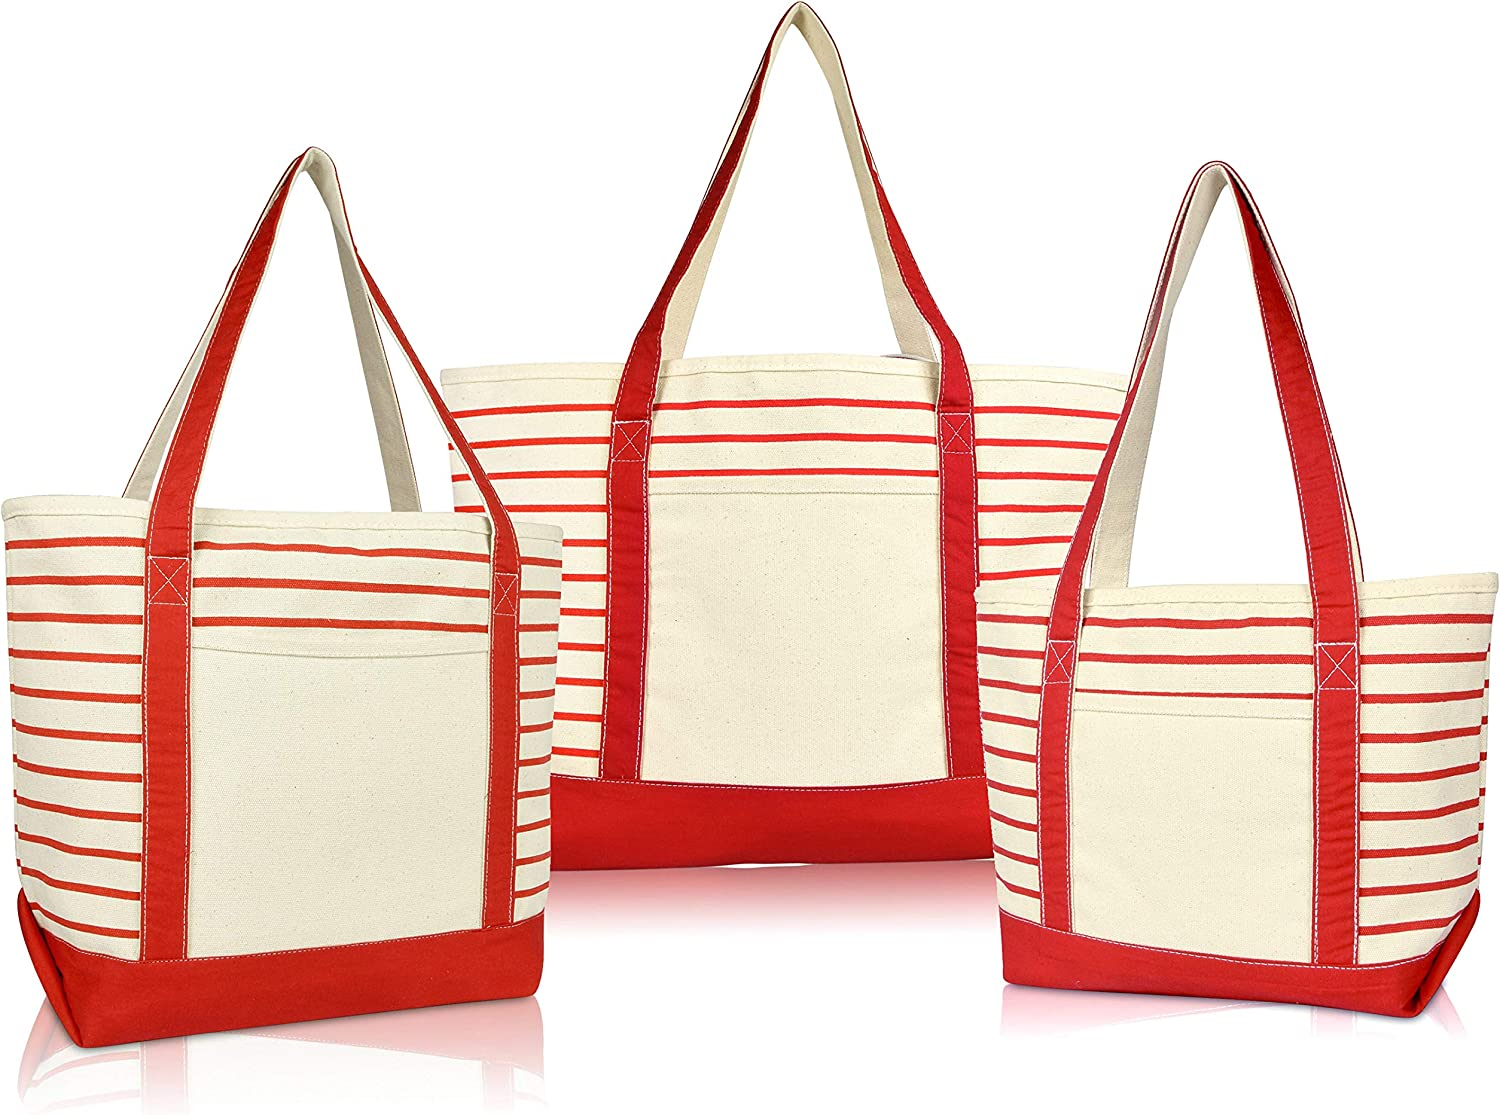 DALIX Stripe Tote Shoulder Bag Deluxe Cotton Canvas Set of 3 in Red